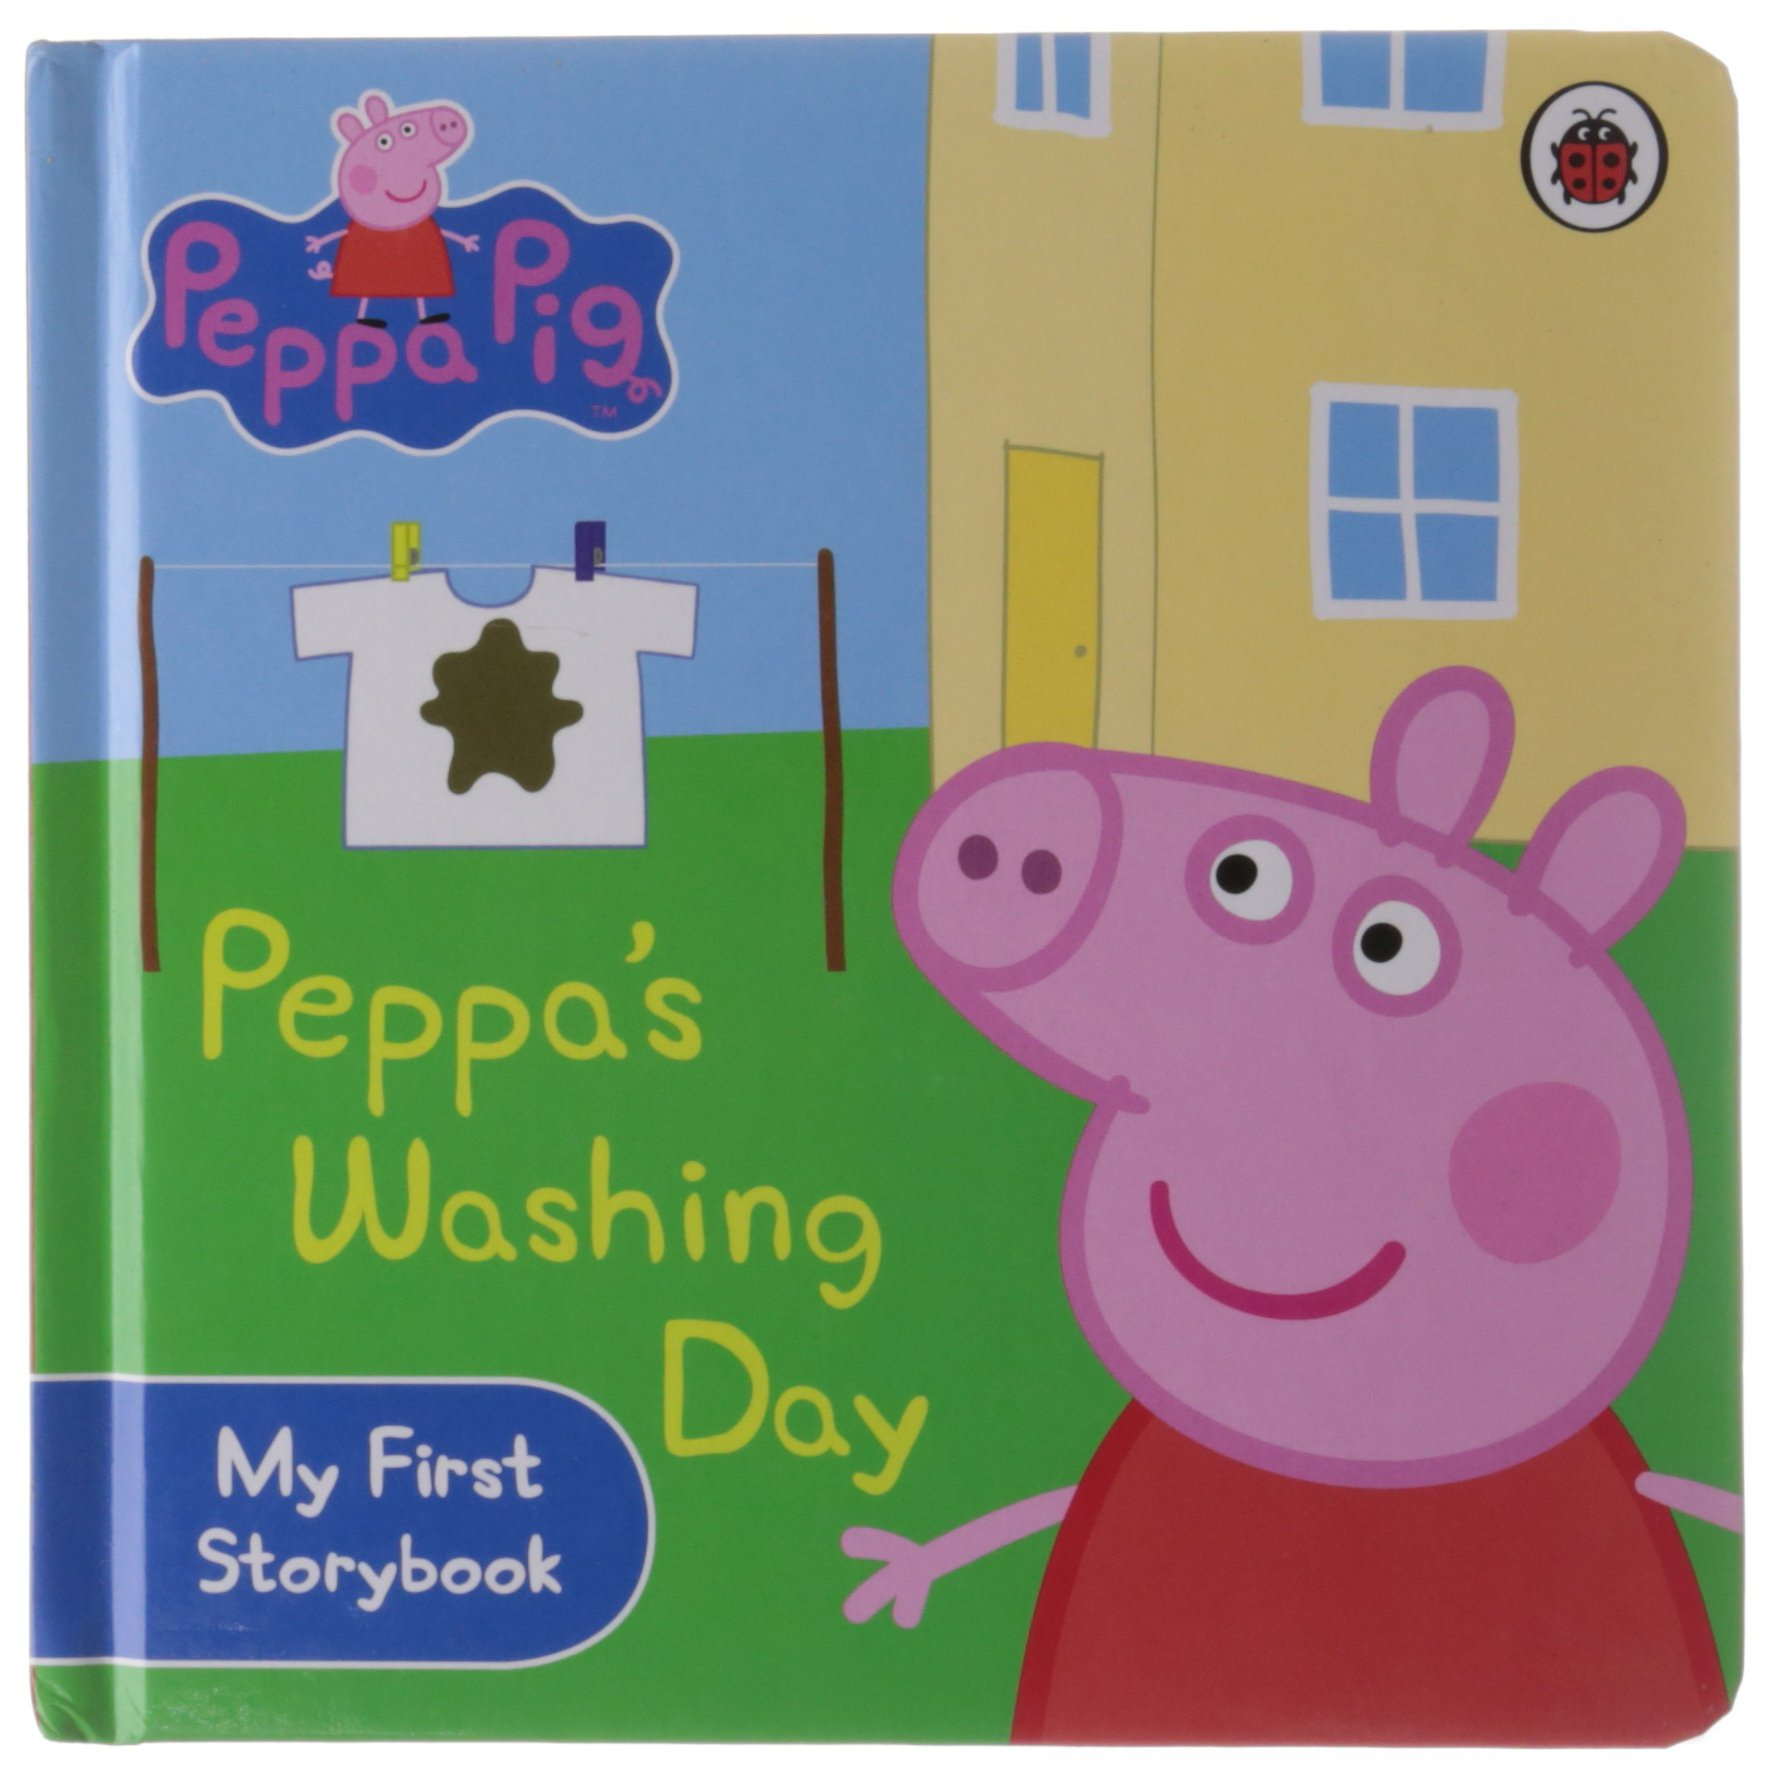 Pig Washing Peppa Pig Peppa's Washing